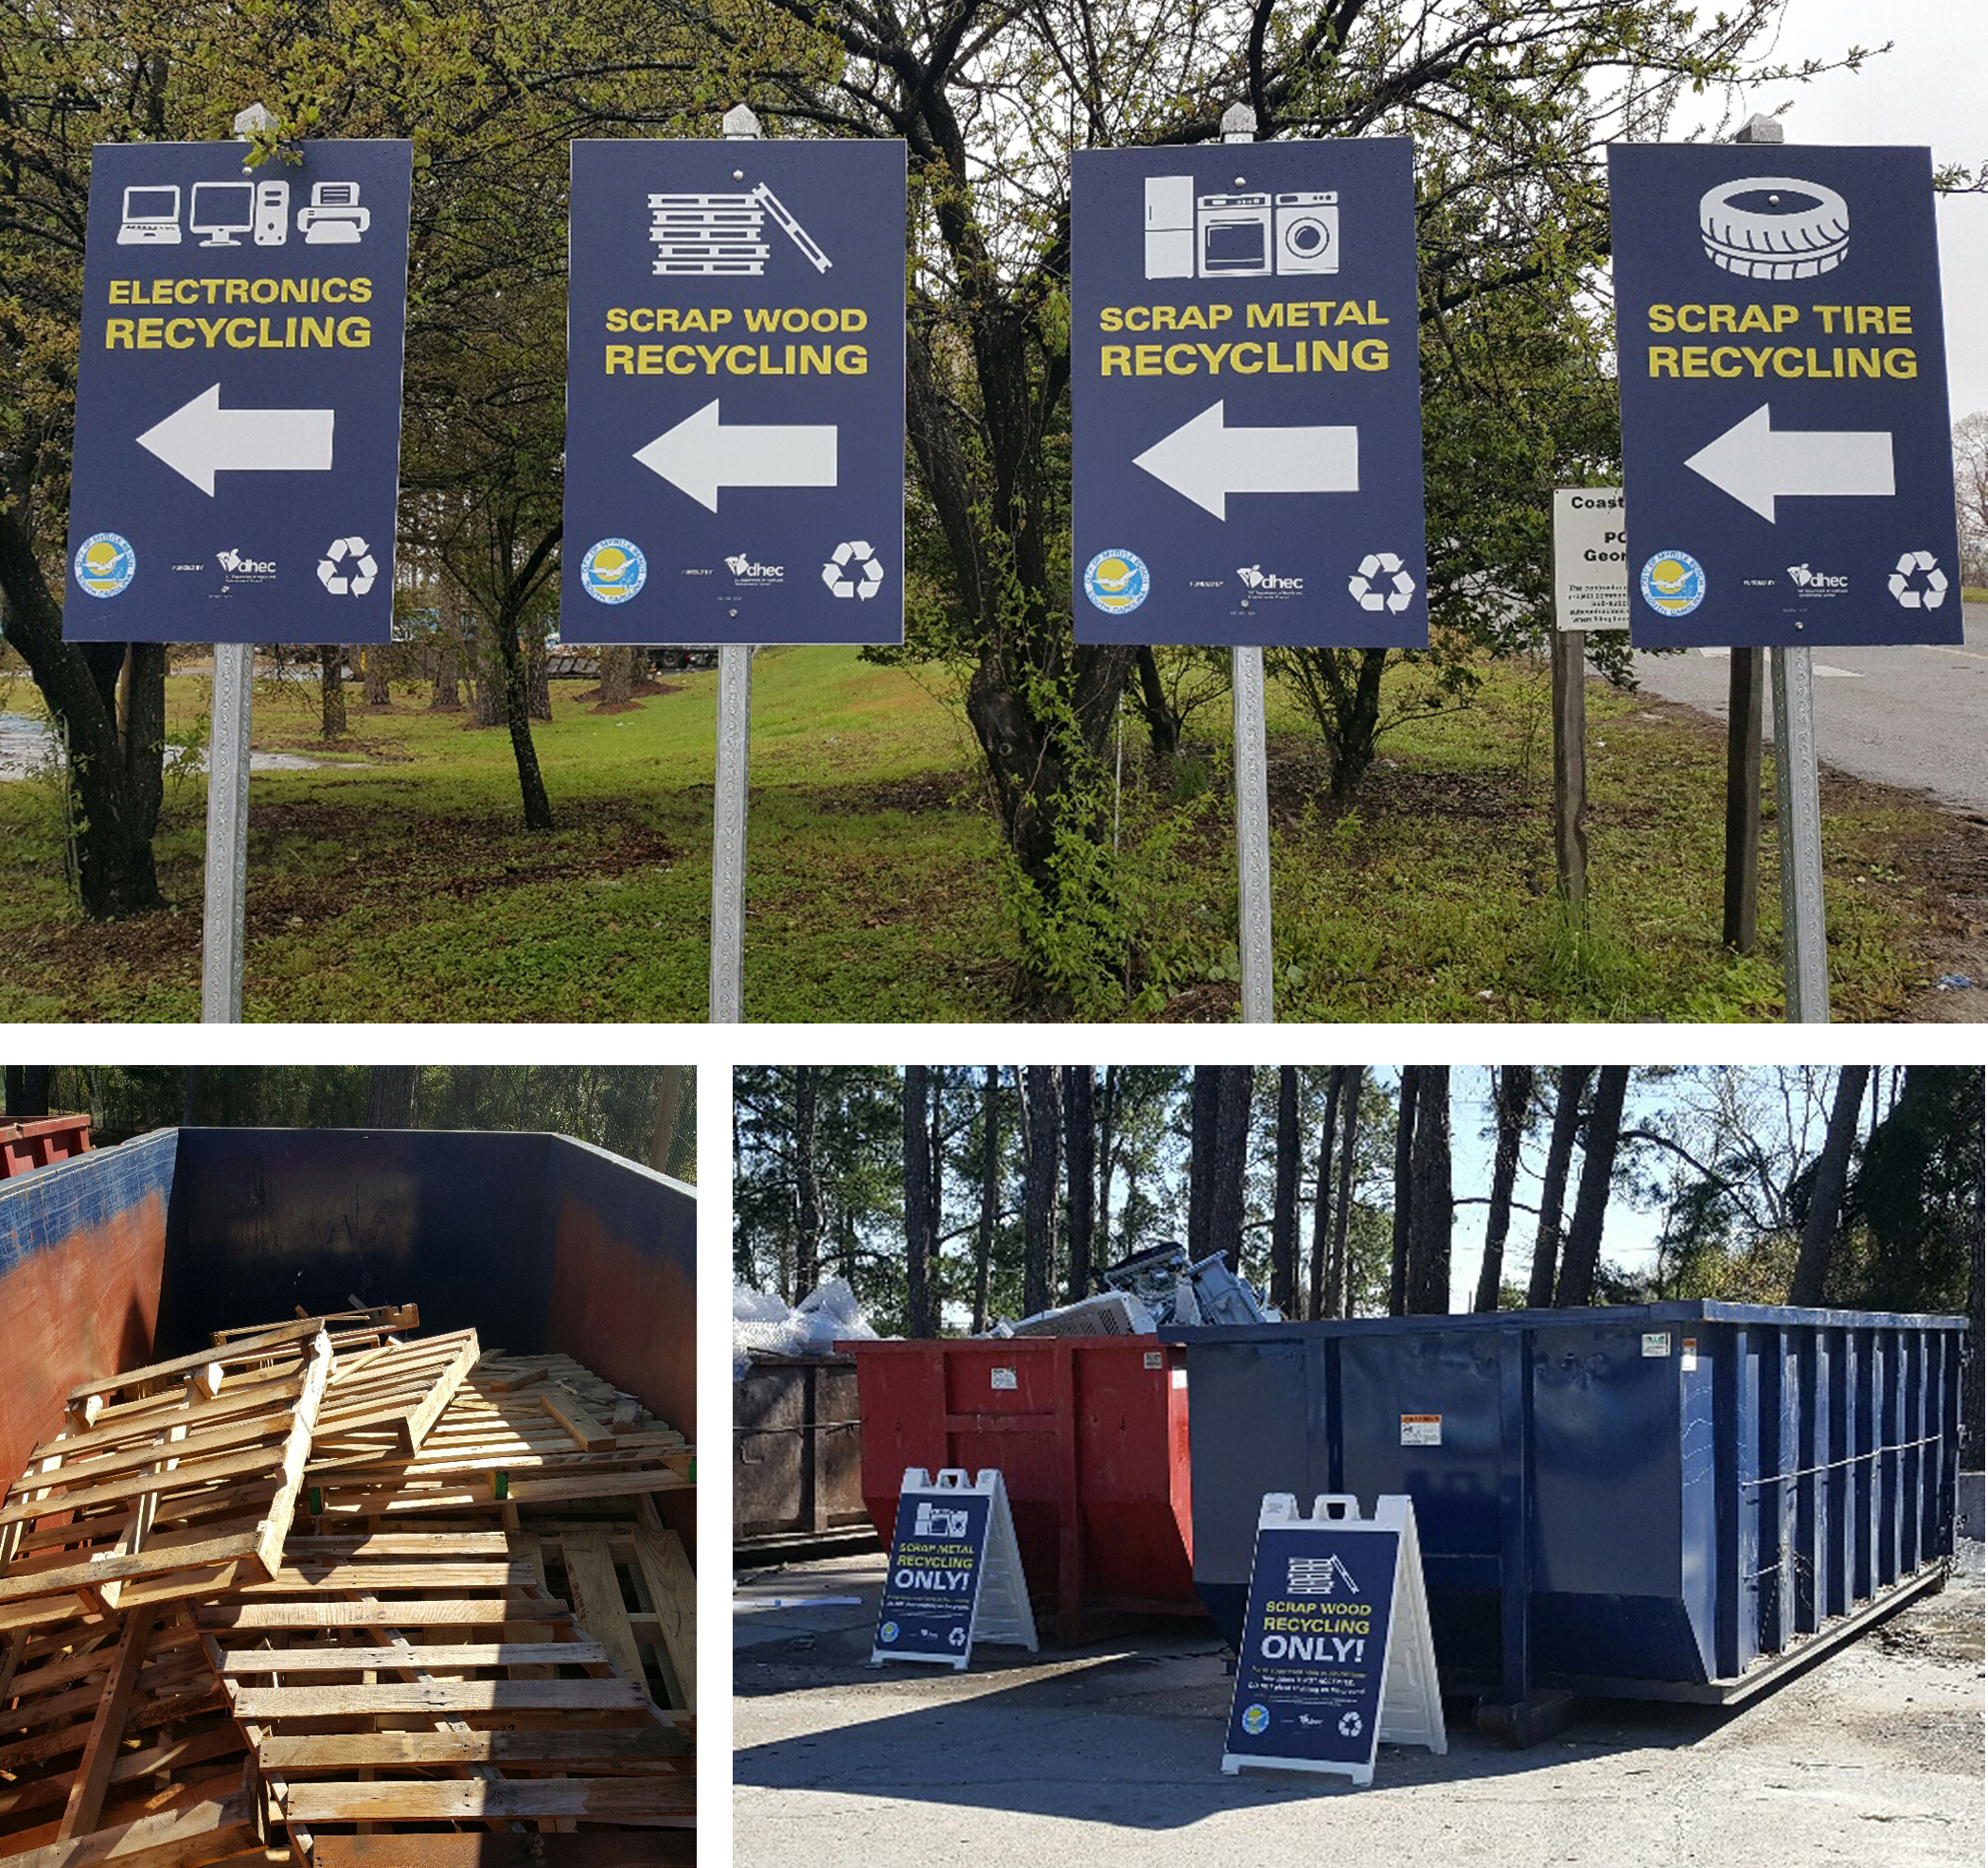 New Recycling Containers at Transfer Station